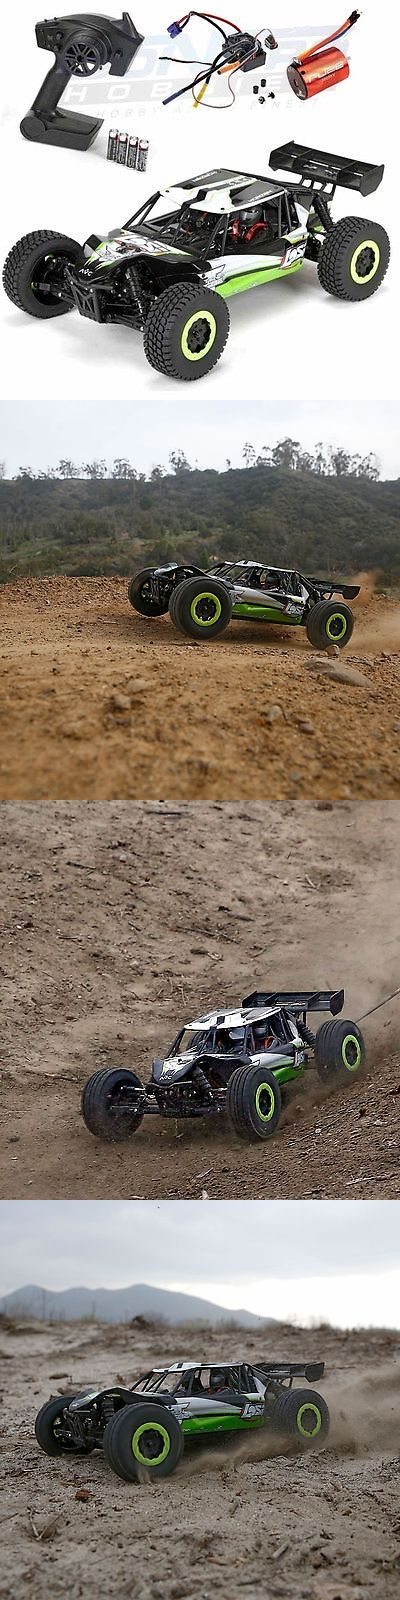 Cars Trucks and Motorcycles 182183: Losi Los03007t1 Ten-Scbe 1 10 4Wd Brushless Short Course Buggy Green Rtr W Dx2e -> BUY IT NOW ONLY: $499.99 on eBay!